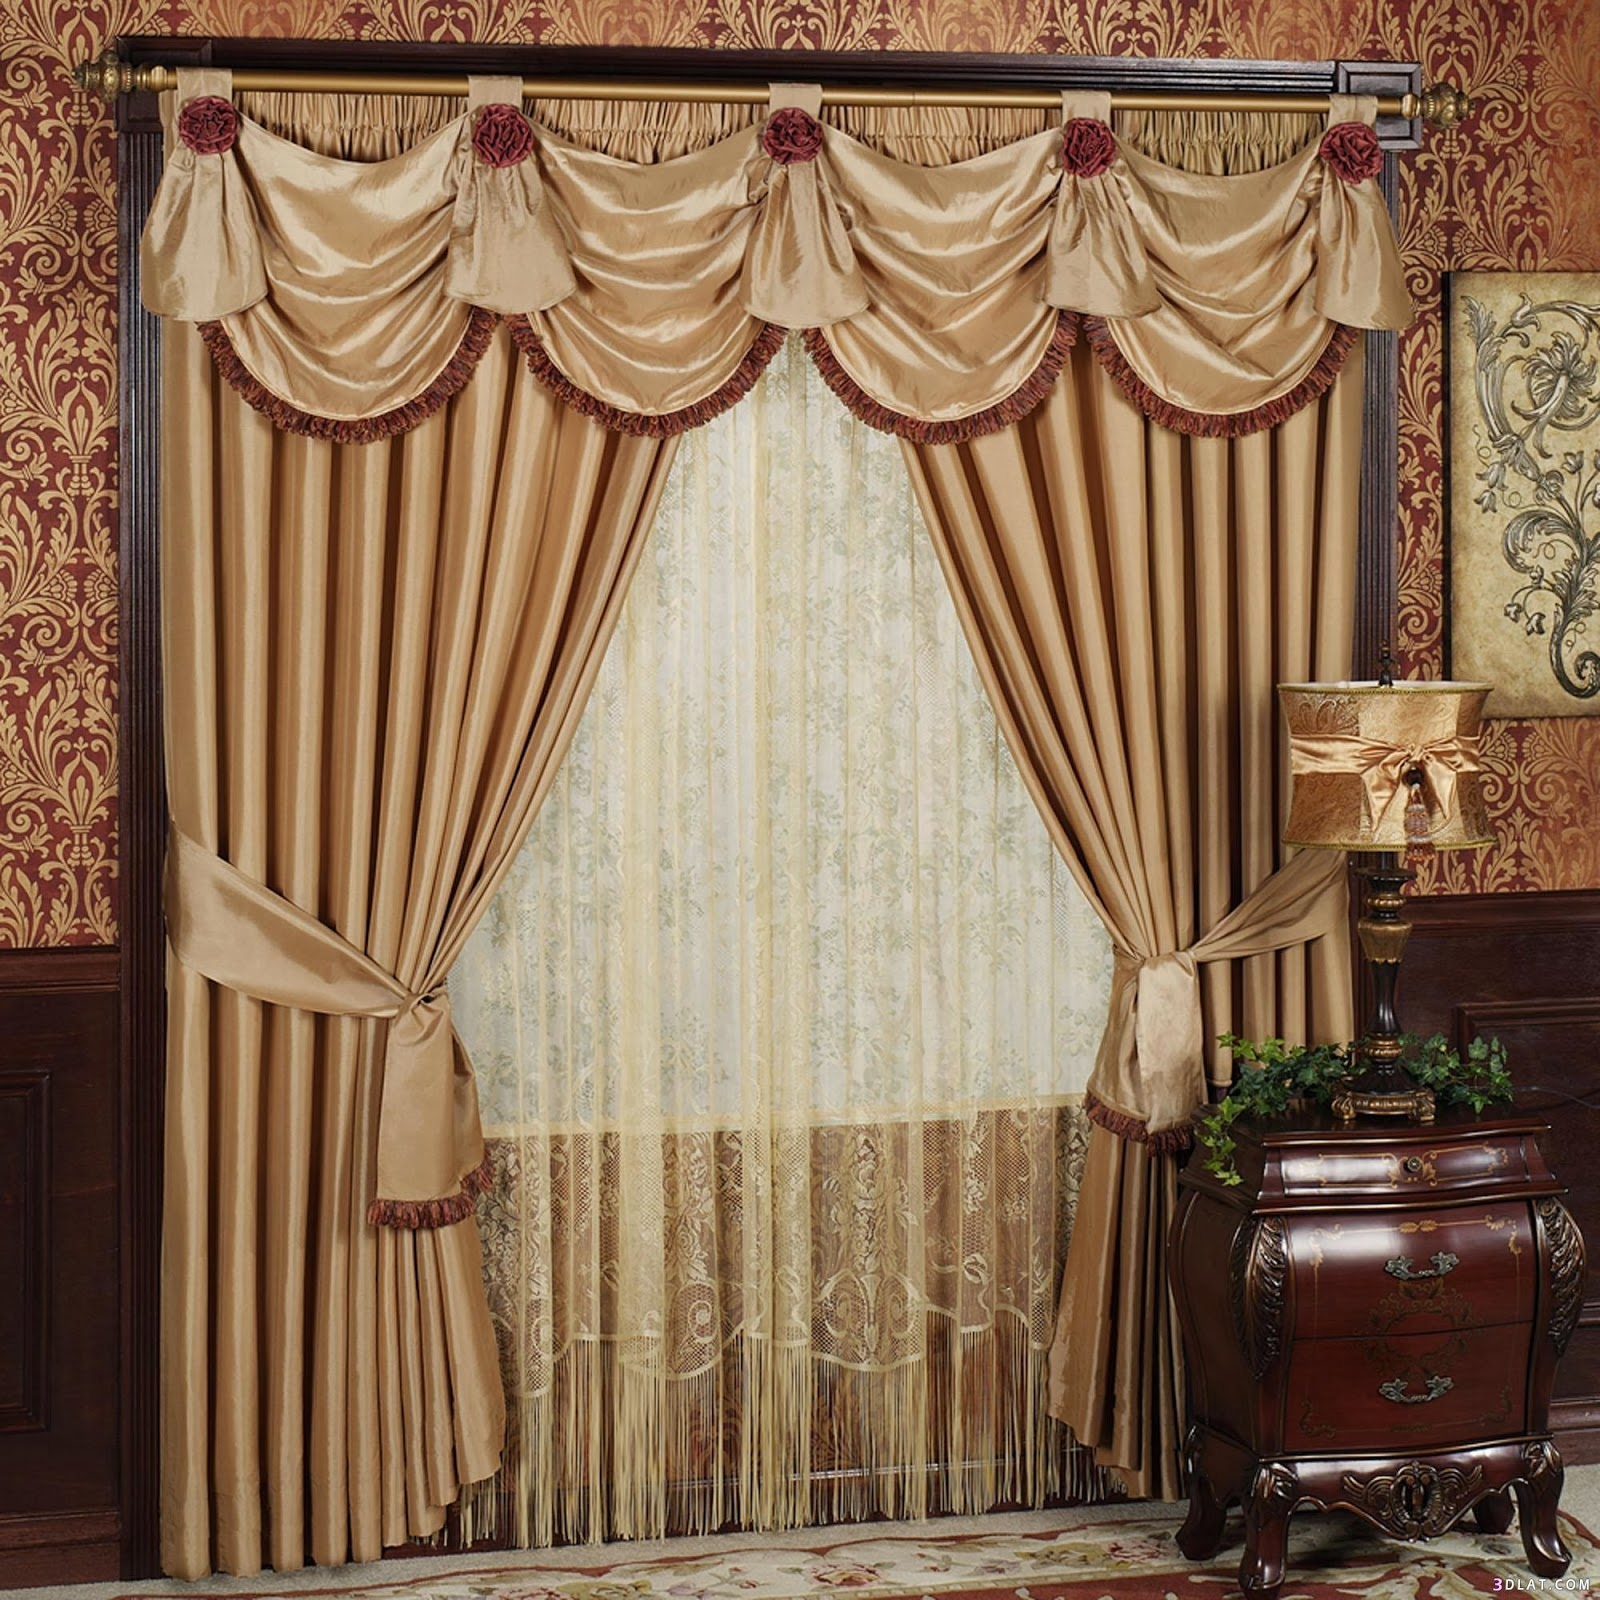 jcpenney living room curtains Jc Penney Curtains   Free Online Home Decor   techhungry.us 1600 X 1600